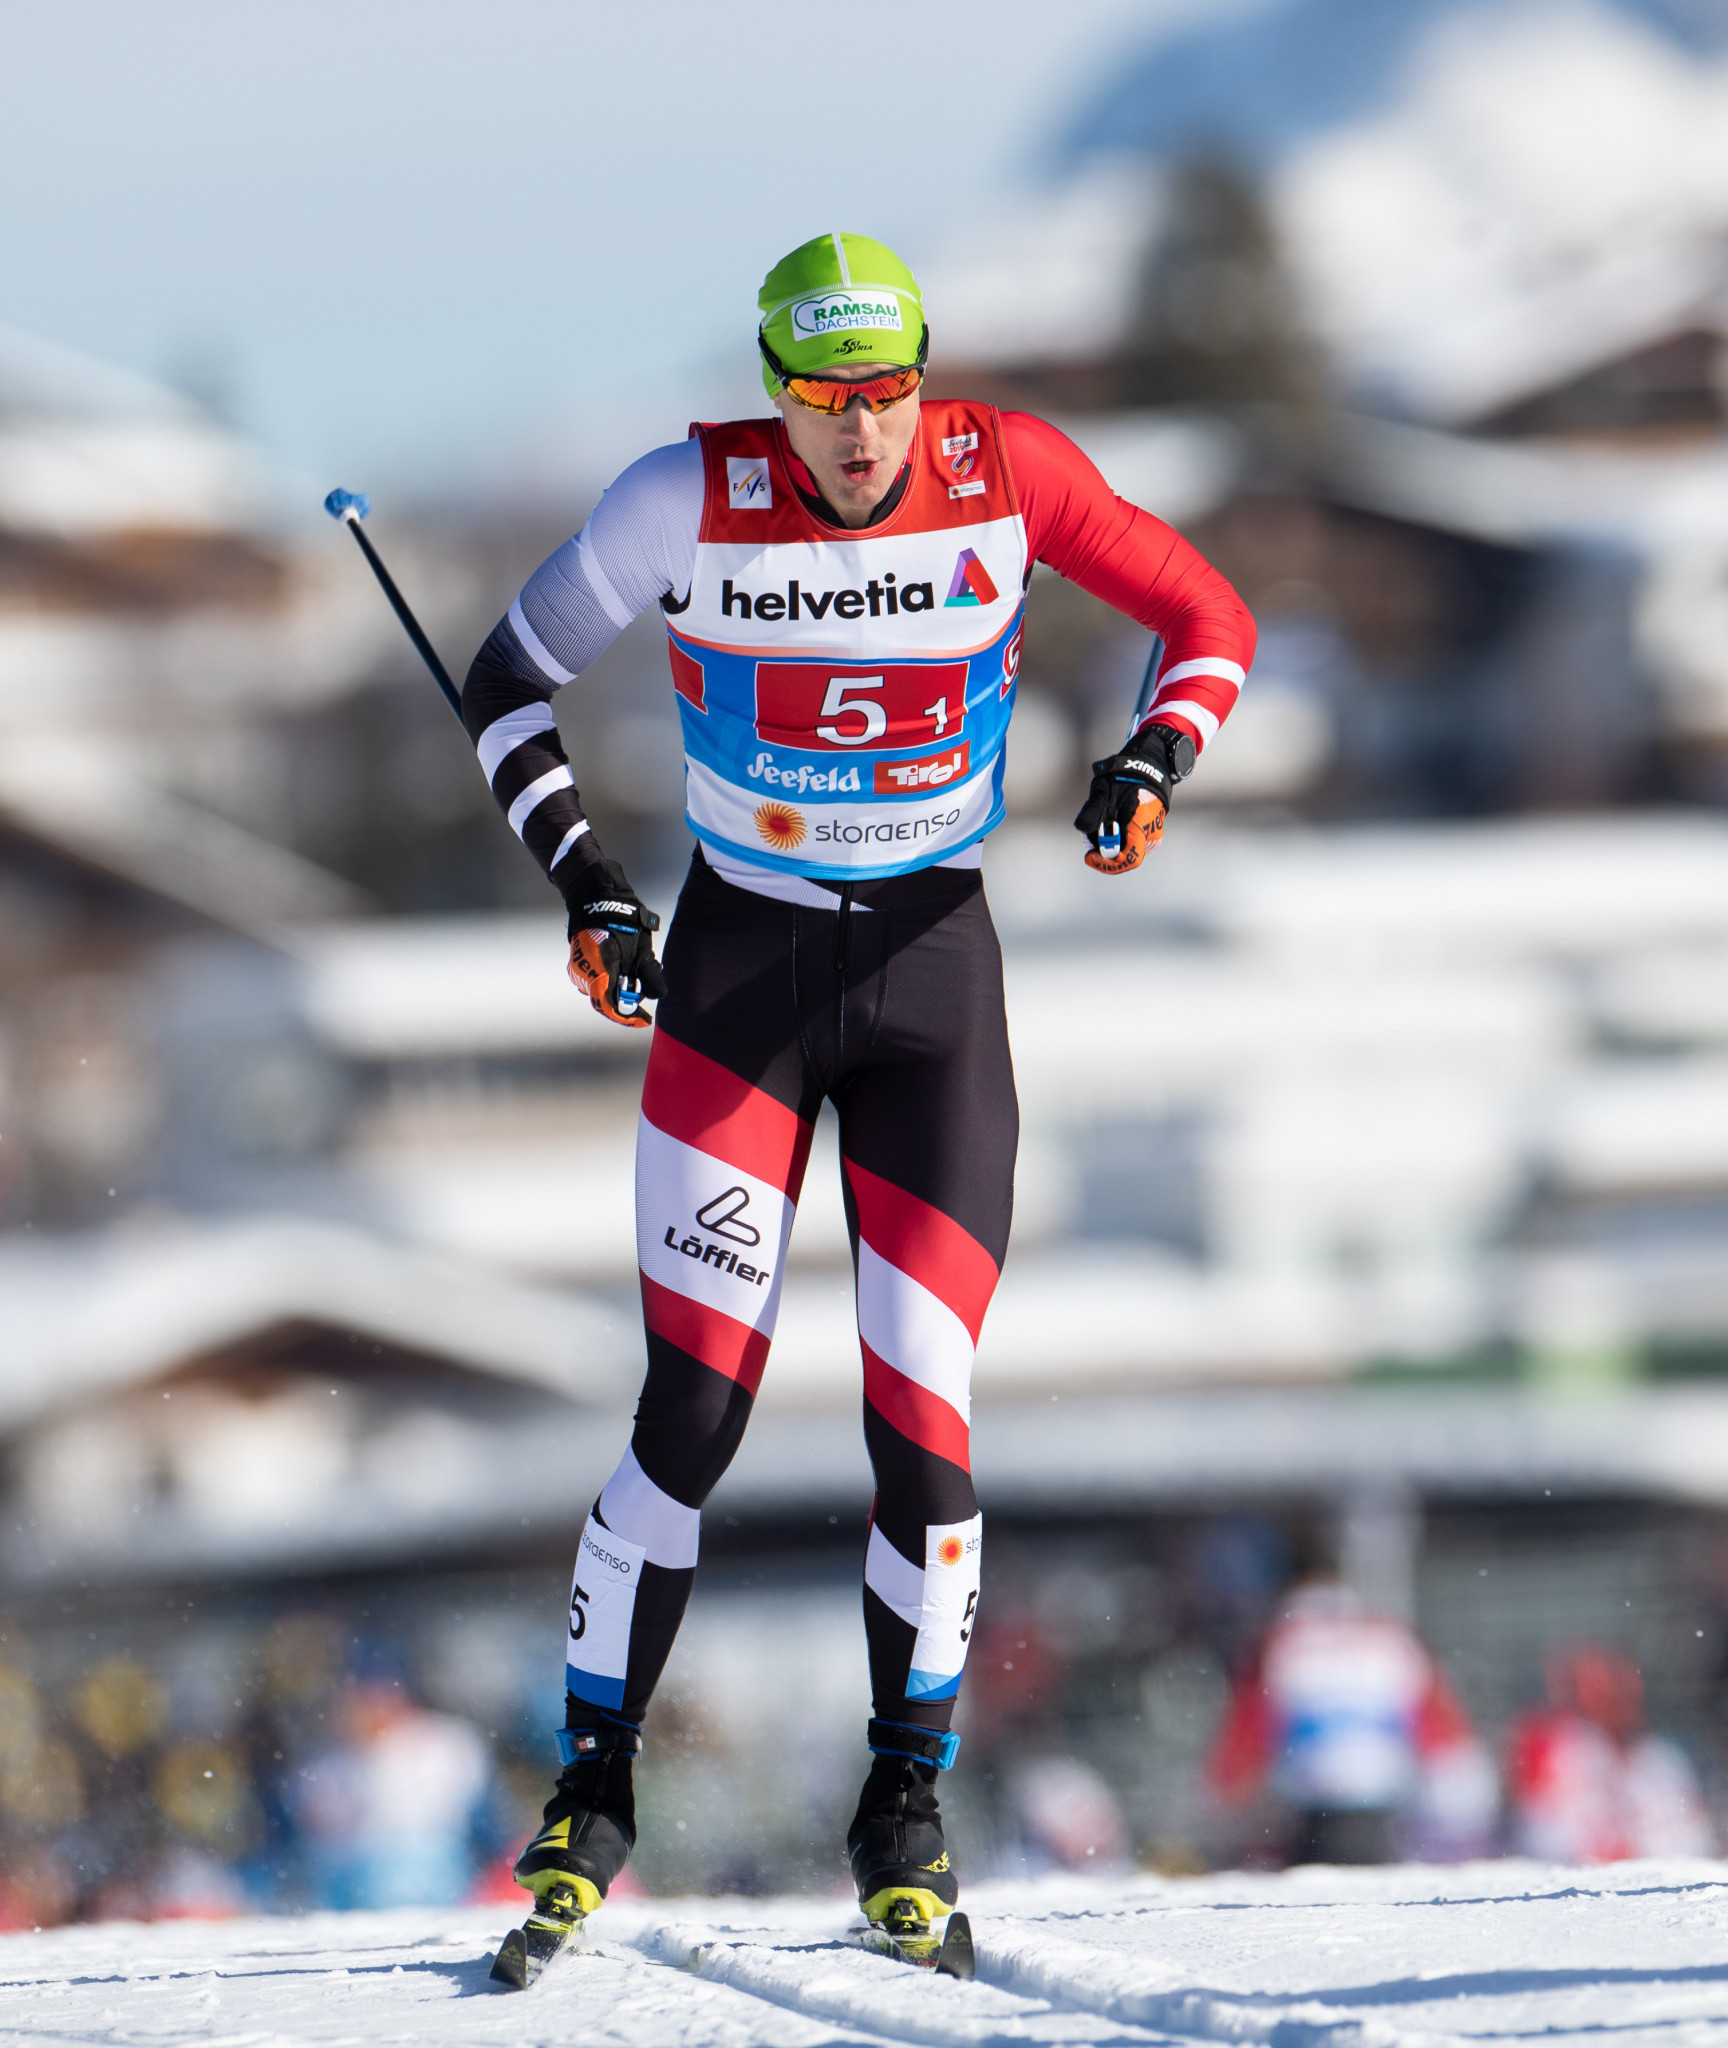 Max Hauke was one of five athletes arrested in Seefeld ©Getty Images